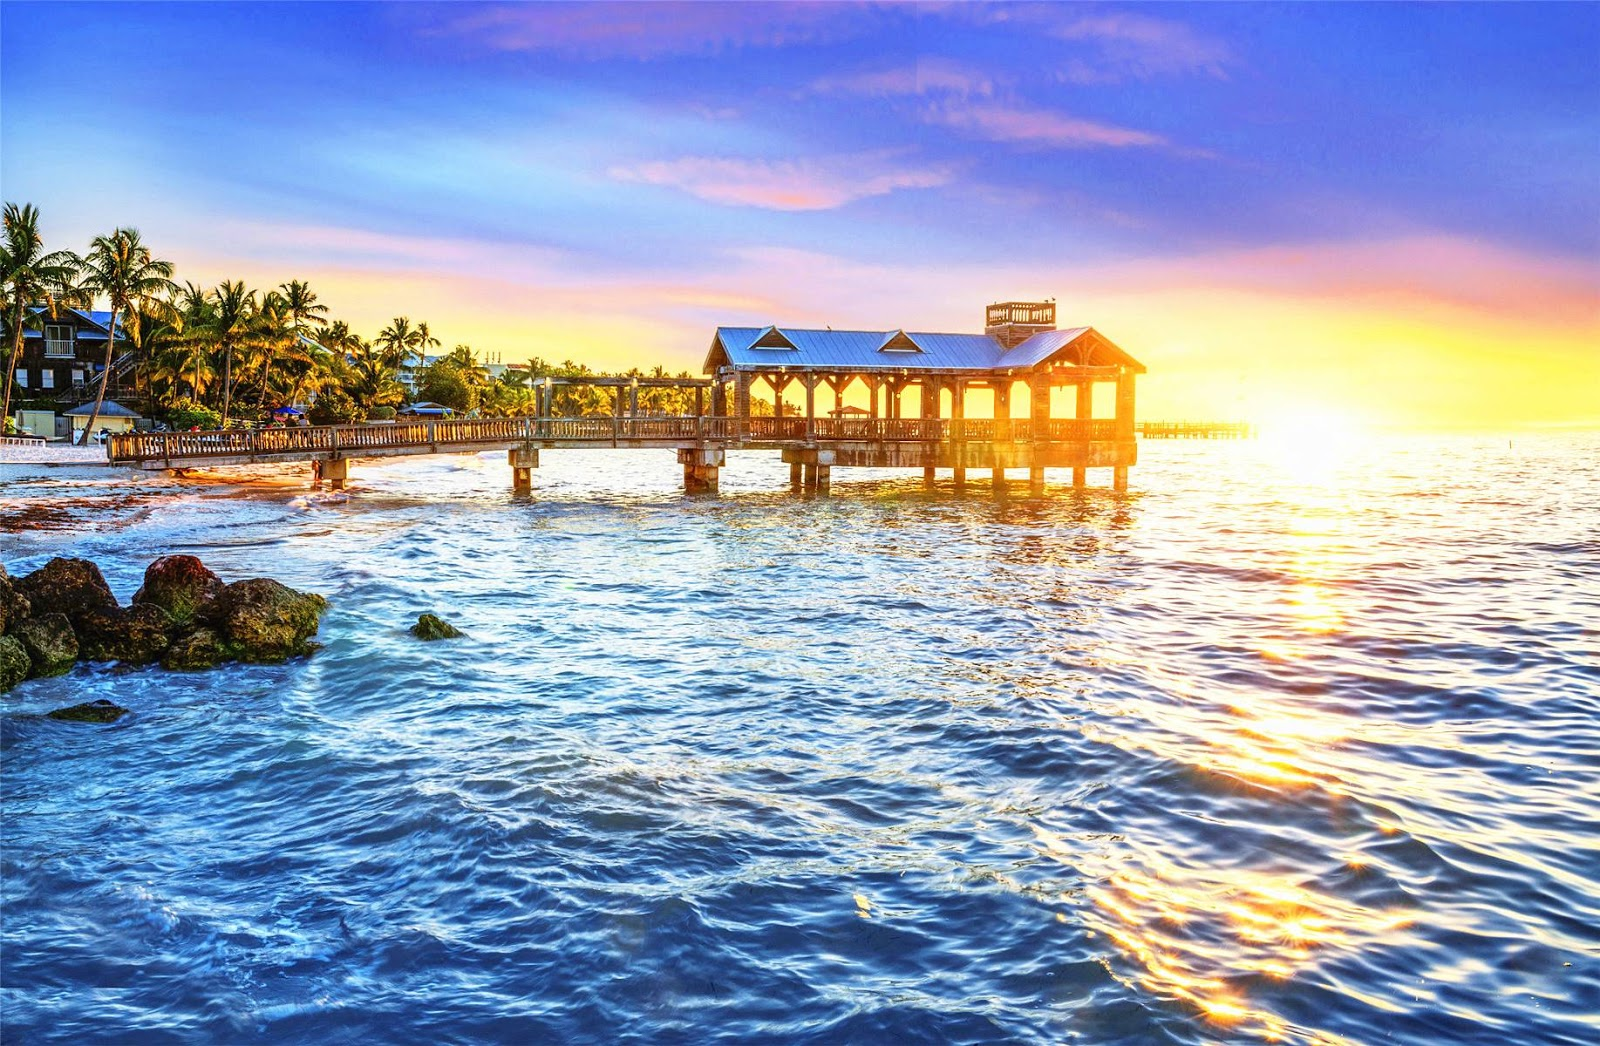 8-Day Miami, Everglades, Key West, Fort Lauderdale Tour from New York - Christmas Special Tour